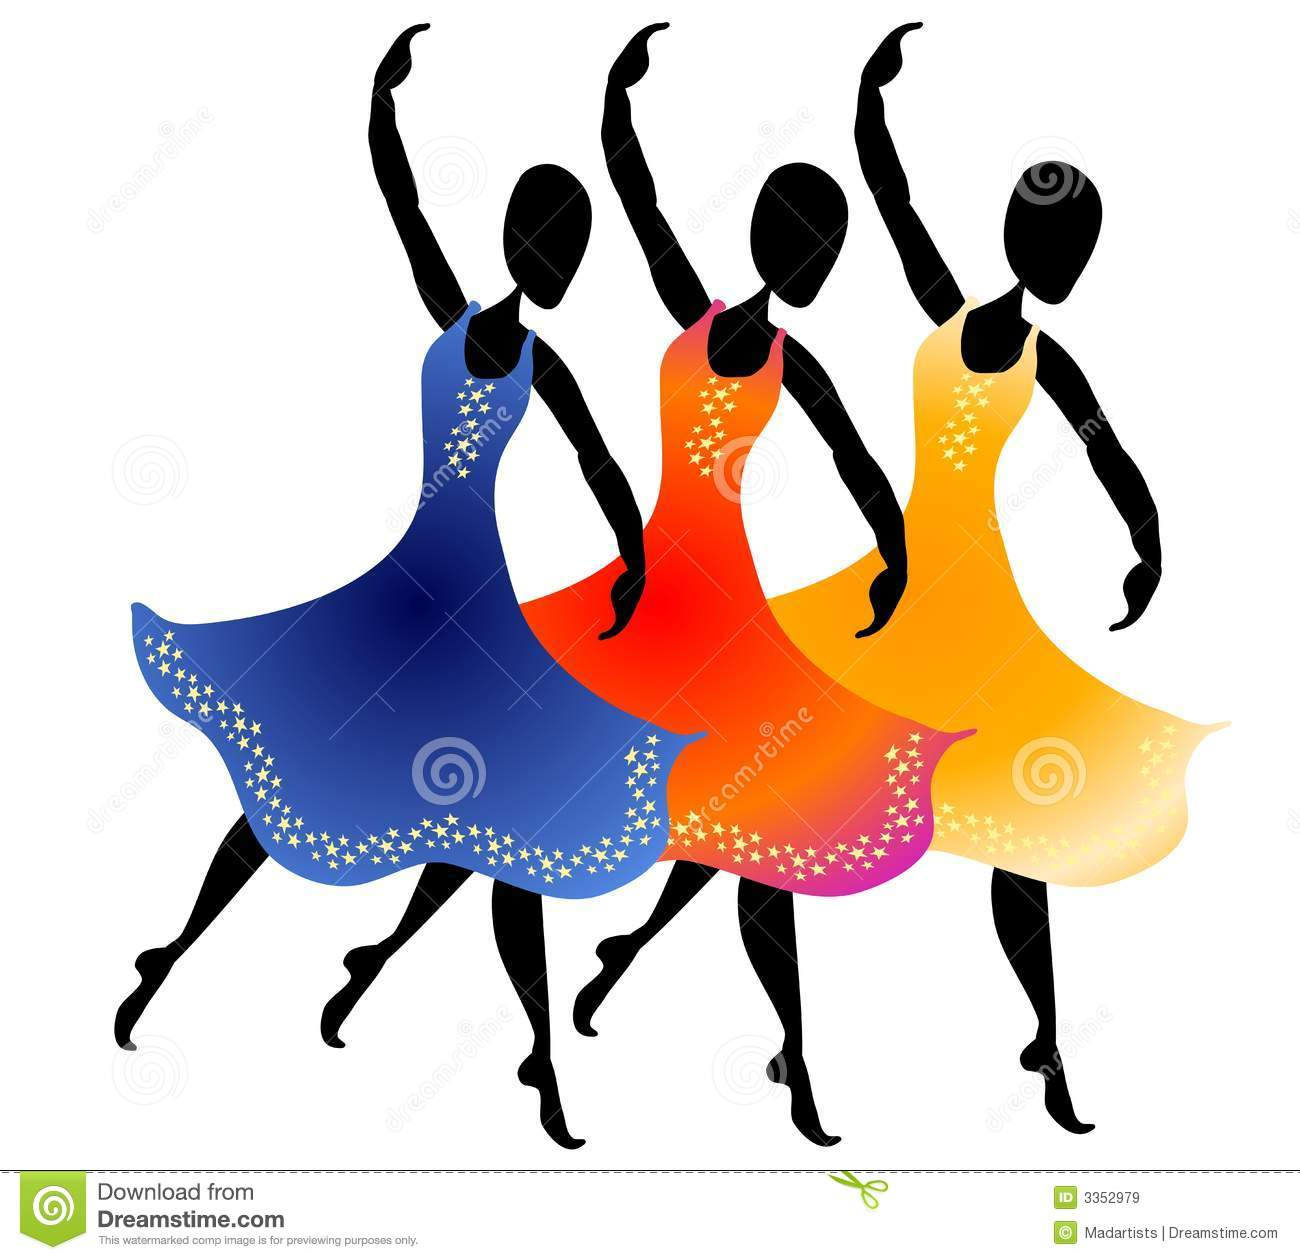 3 women dancing clip art stock illustration illustration of images rh dreamstime com ballroom dancing clipart images dance clipart images